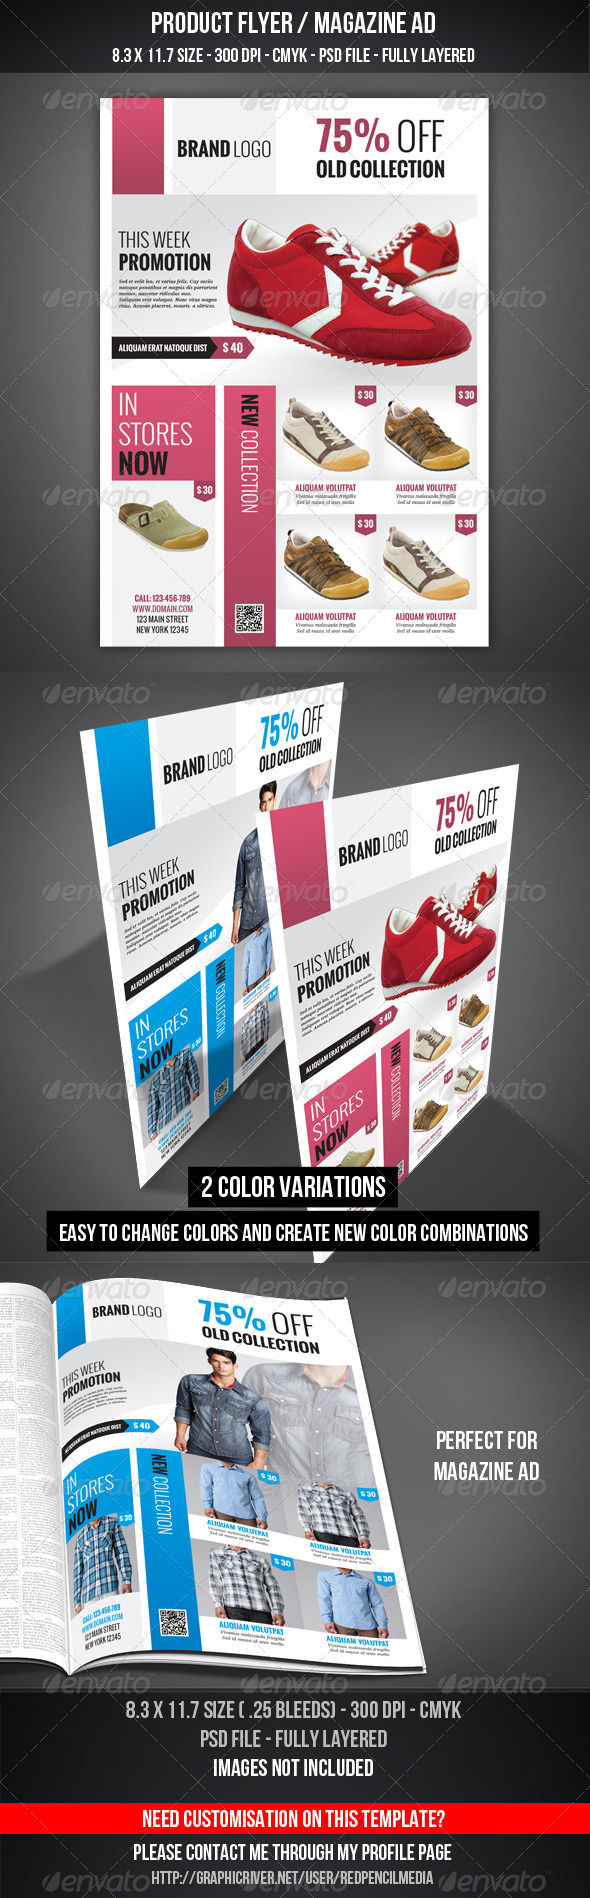 GraphicRiver Product Flyer Magazine AD 4564634